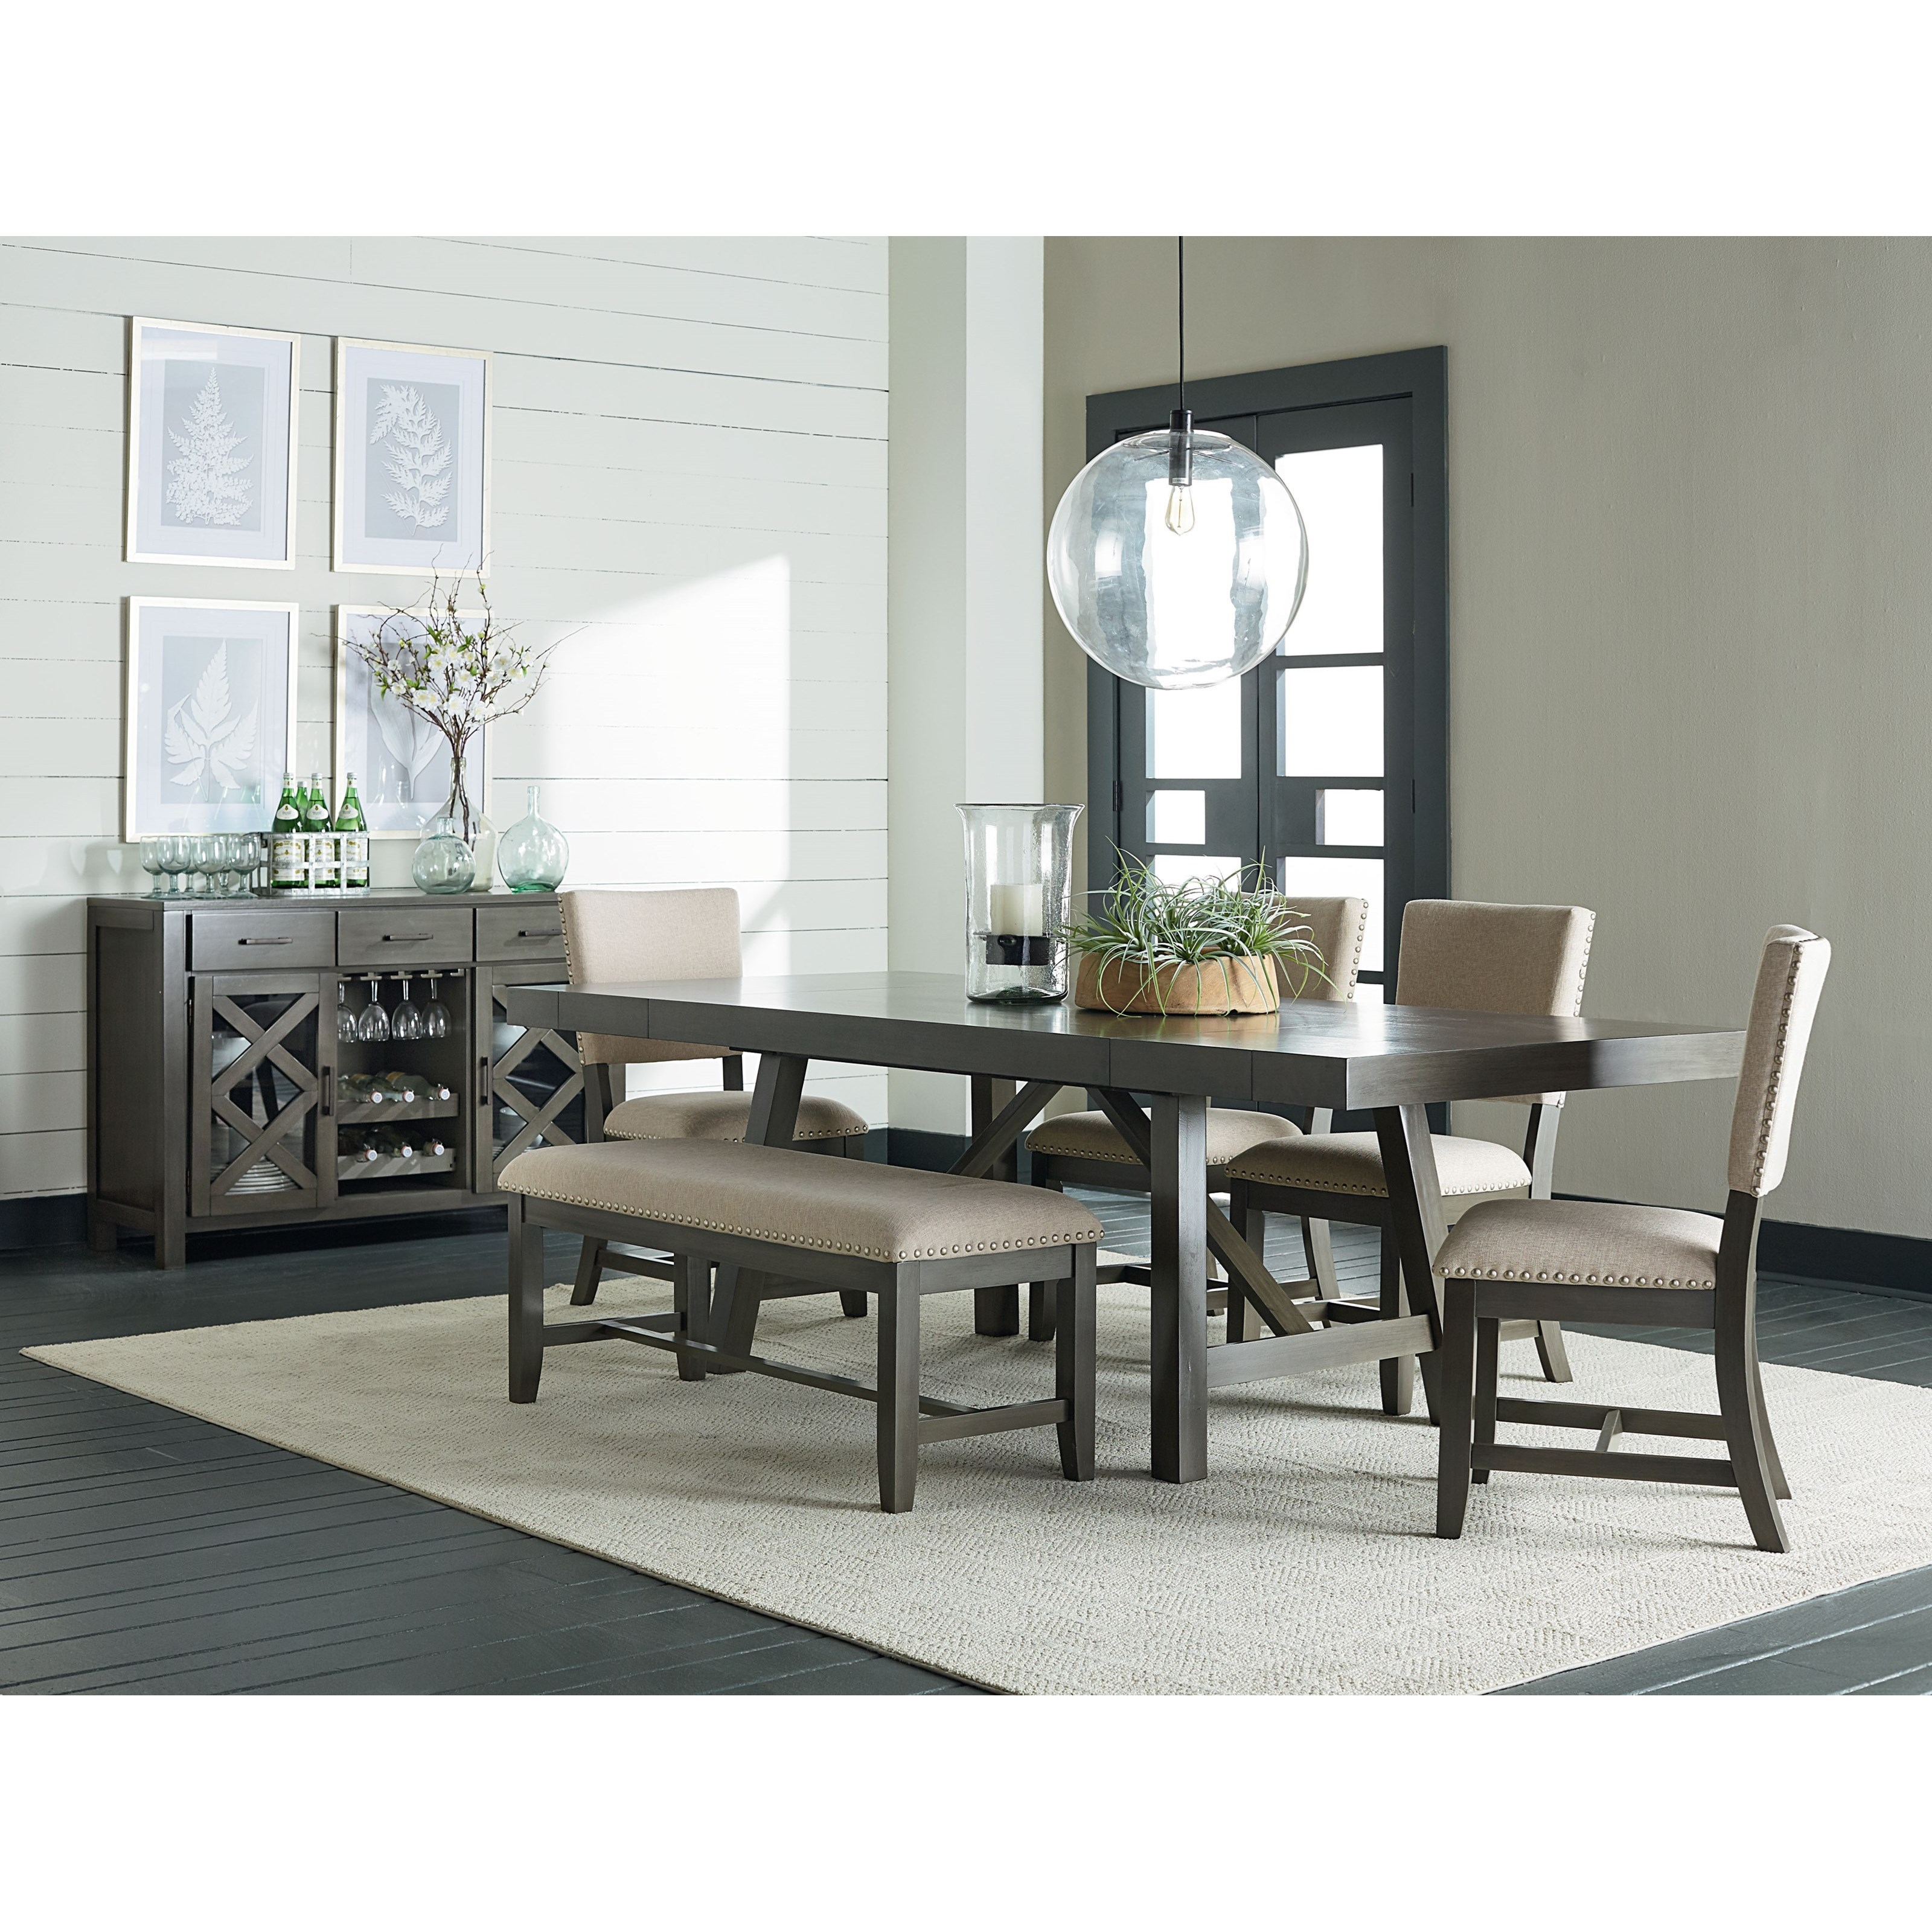 Trestle Dining Room Table: Trestle Dining Room Table With Two Leaves By Standard